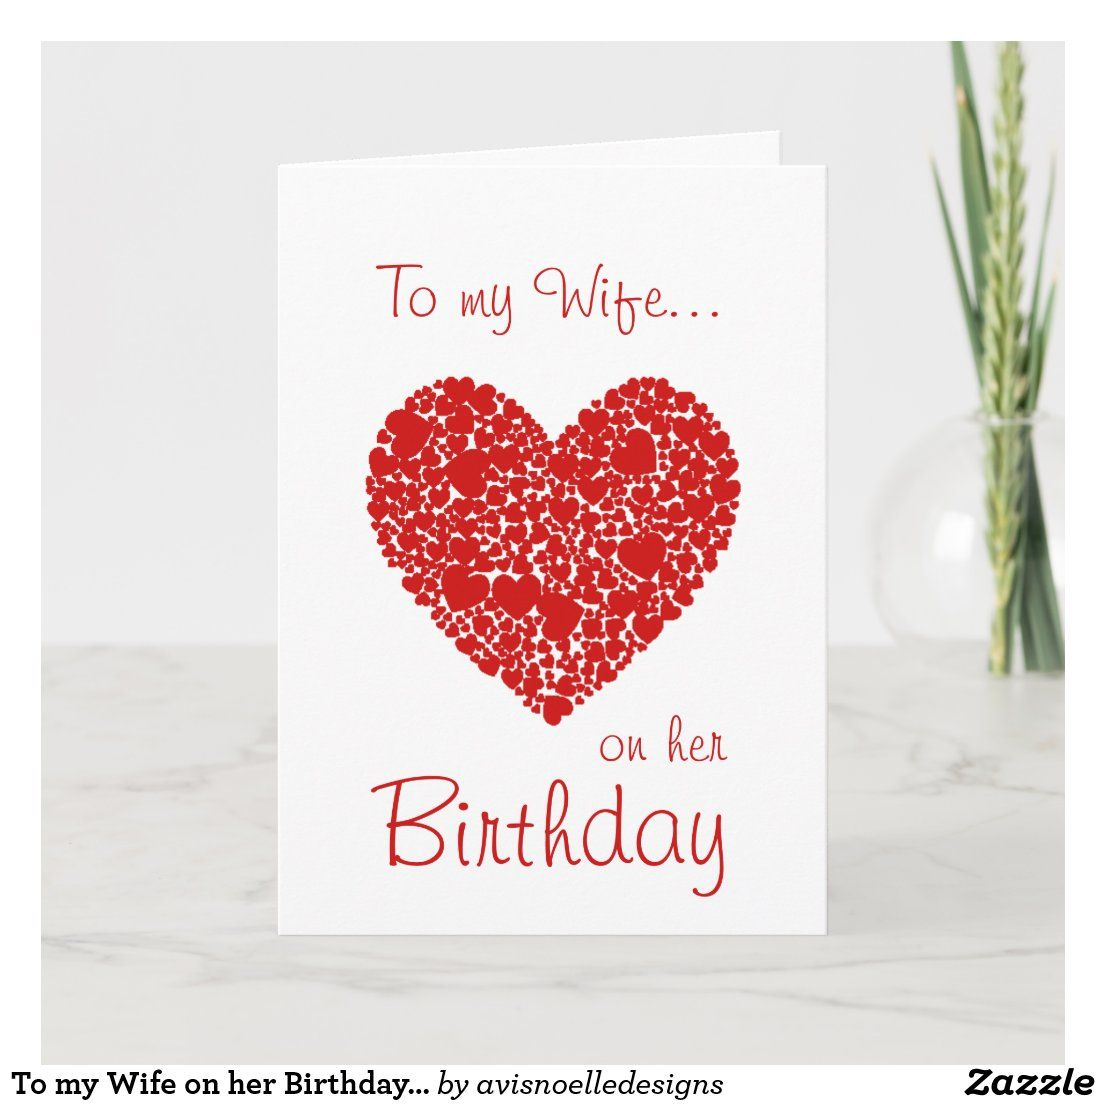 To My Wife On Her Birthday Red Hearts Romantic Card Zazzle Com Romantic Cards Romantic Birthday Cards Birthday Gift Cards